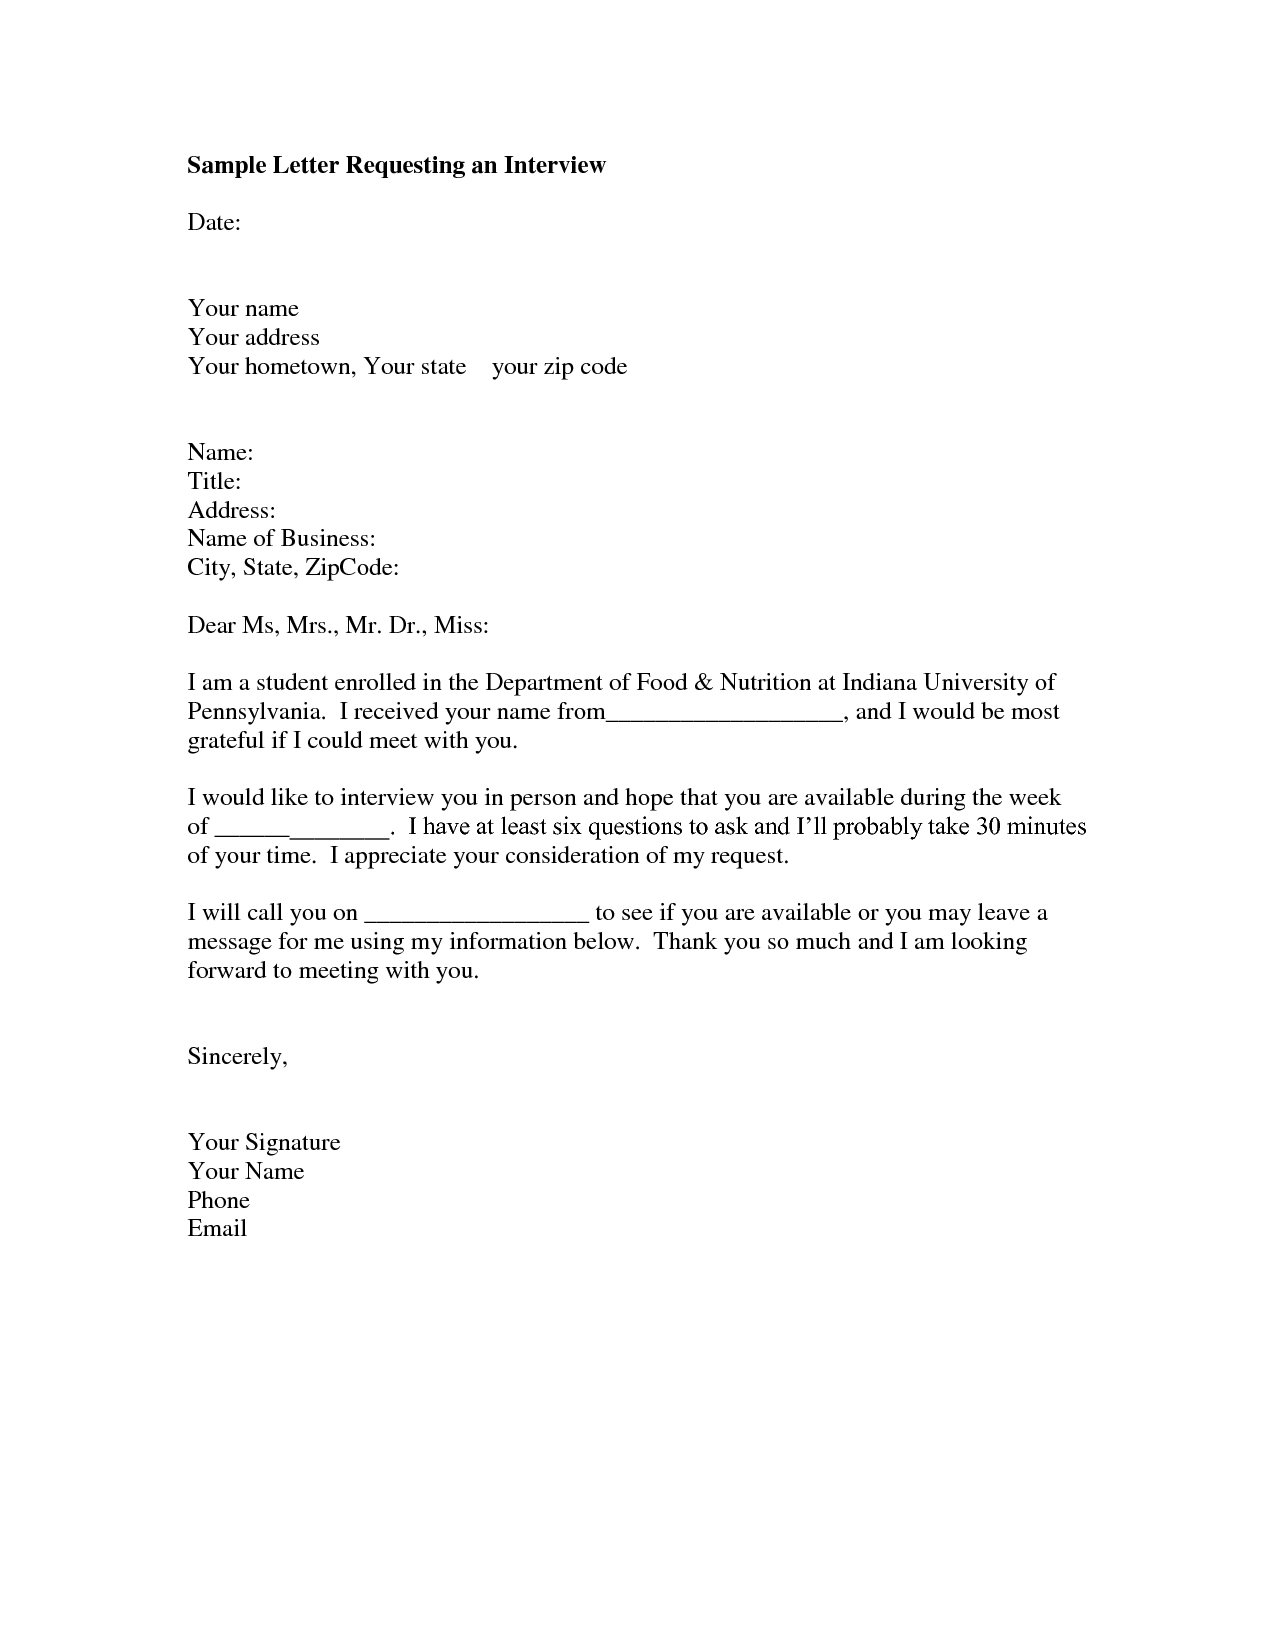 Interview request letter sample format of a letter you can use to interview request letter sample format of a letter you can use to request an interview altavistaventures Choice Image